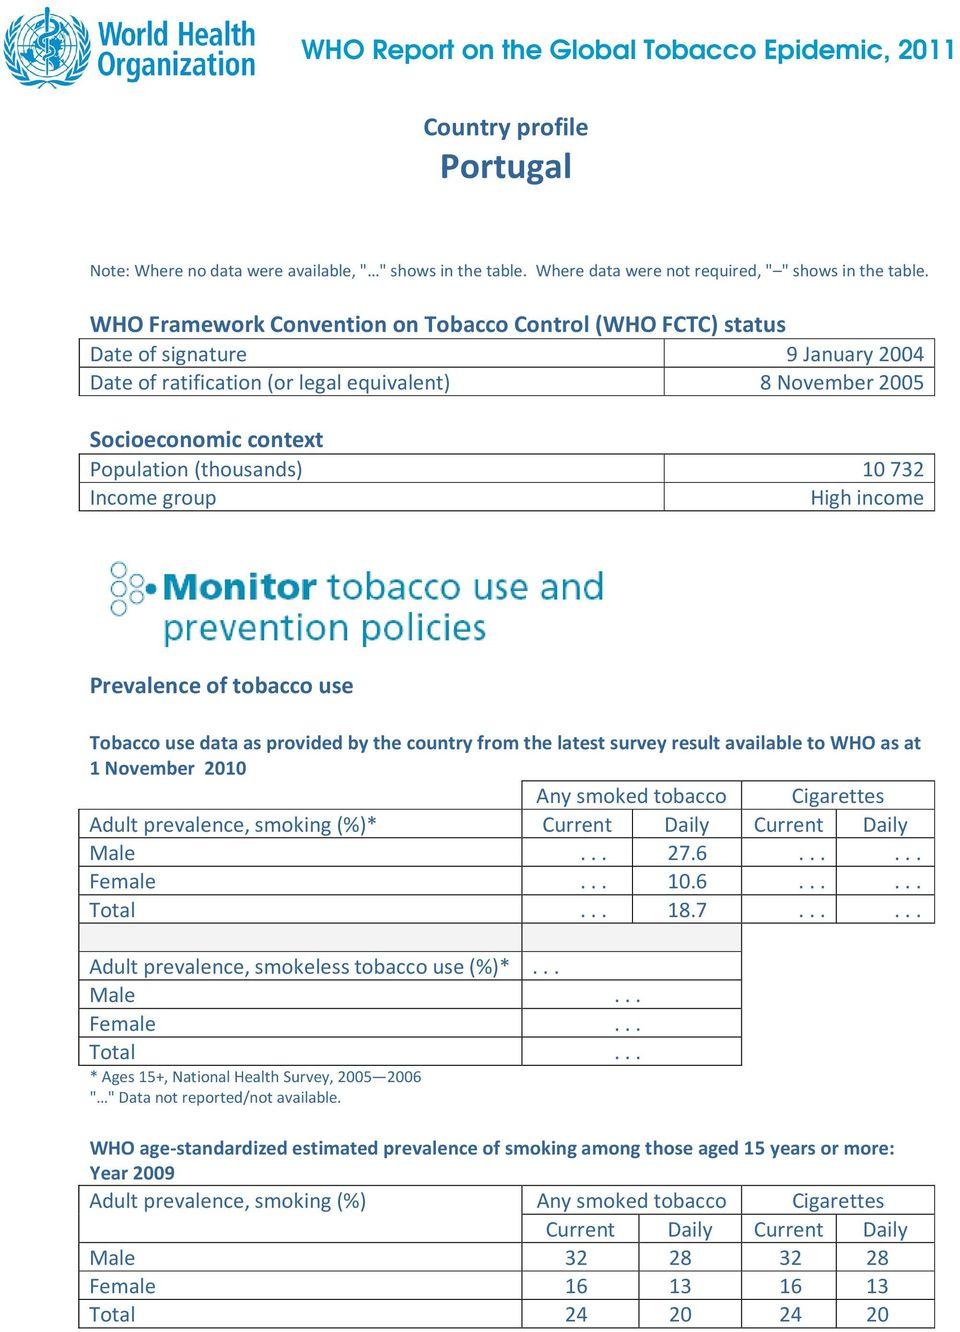 10732 Income group High income Prevalence of tobacco use Tobacco use data as provided by the country from the latest survey result available to WHO as at 1 November 2010 Any smoked tobacco Cigarettes